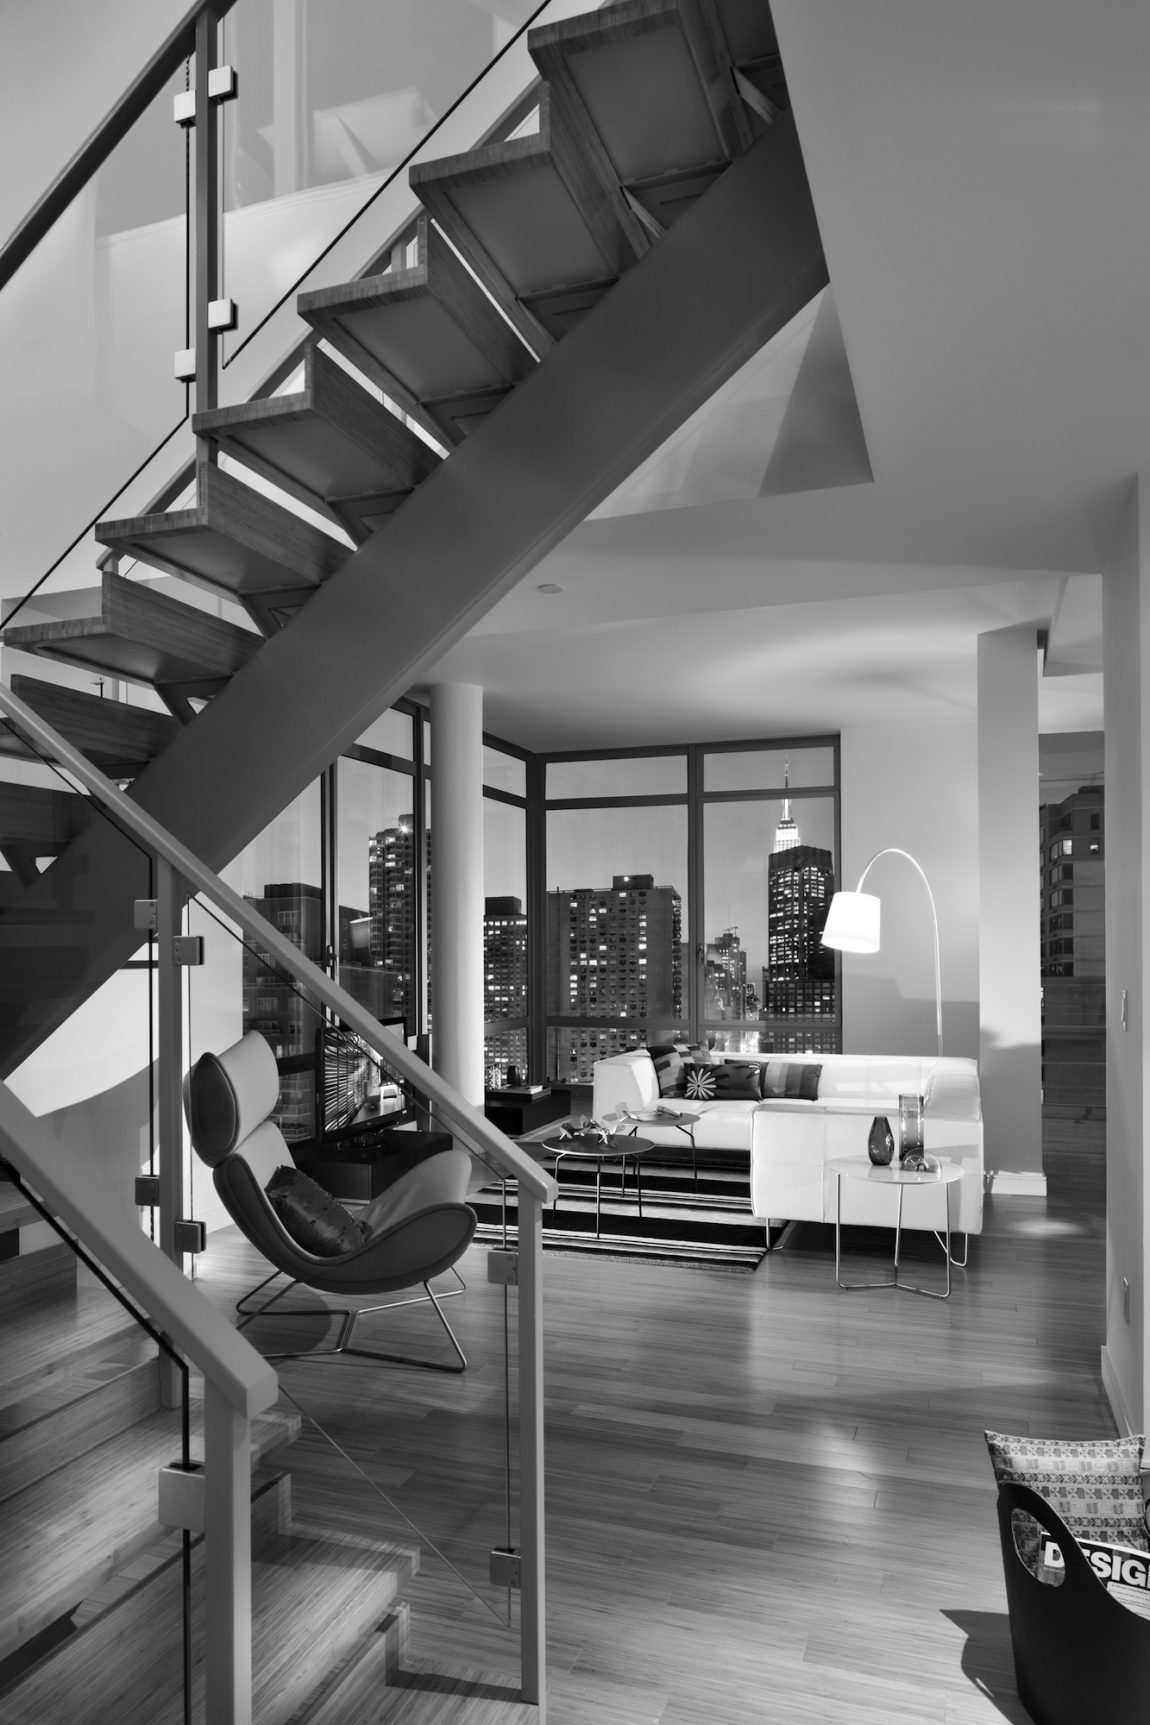 A staircase, living room, and view of New York City.